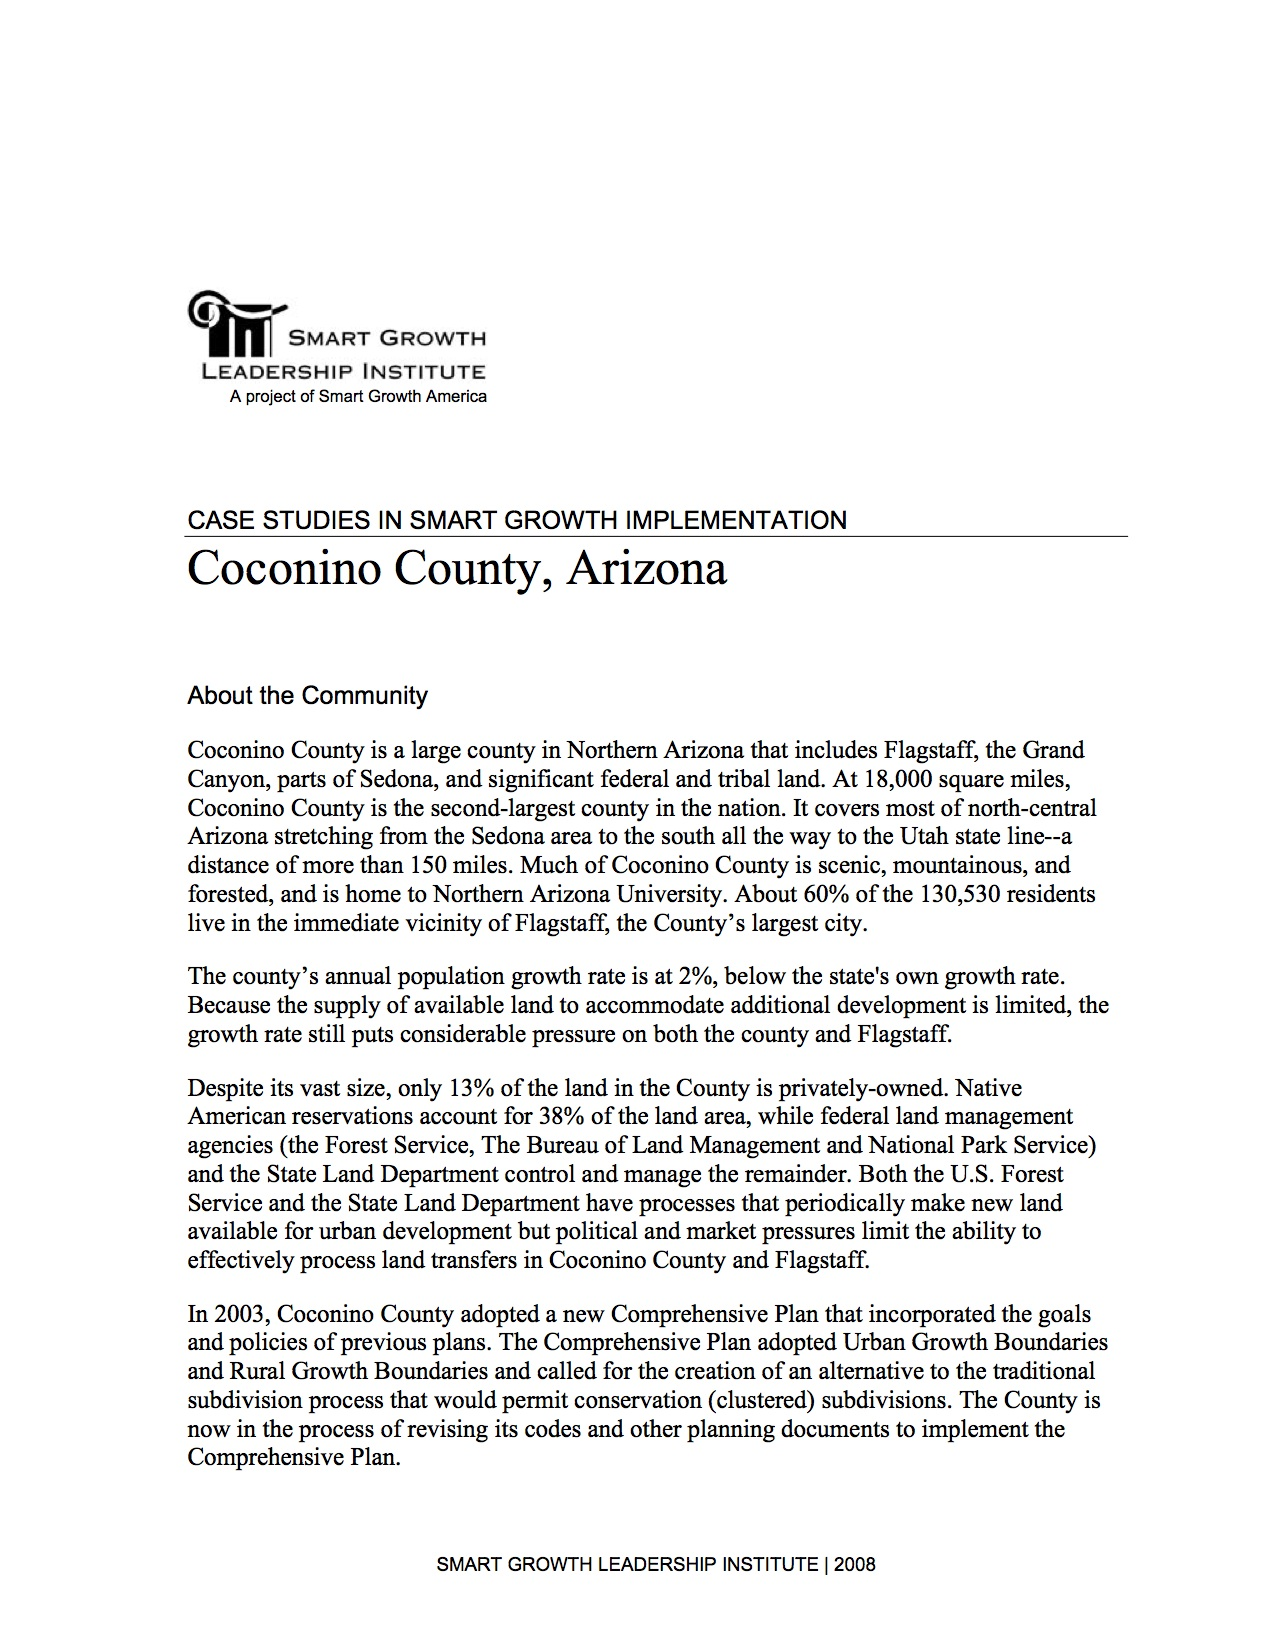 Case Studies in Smart Growth Implementation: Coconino County, Arizona